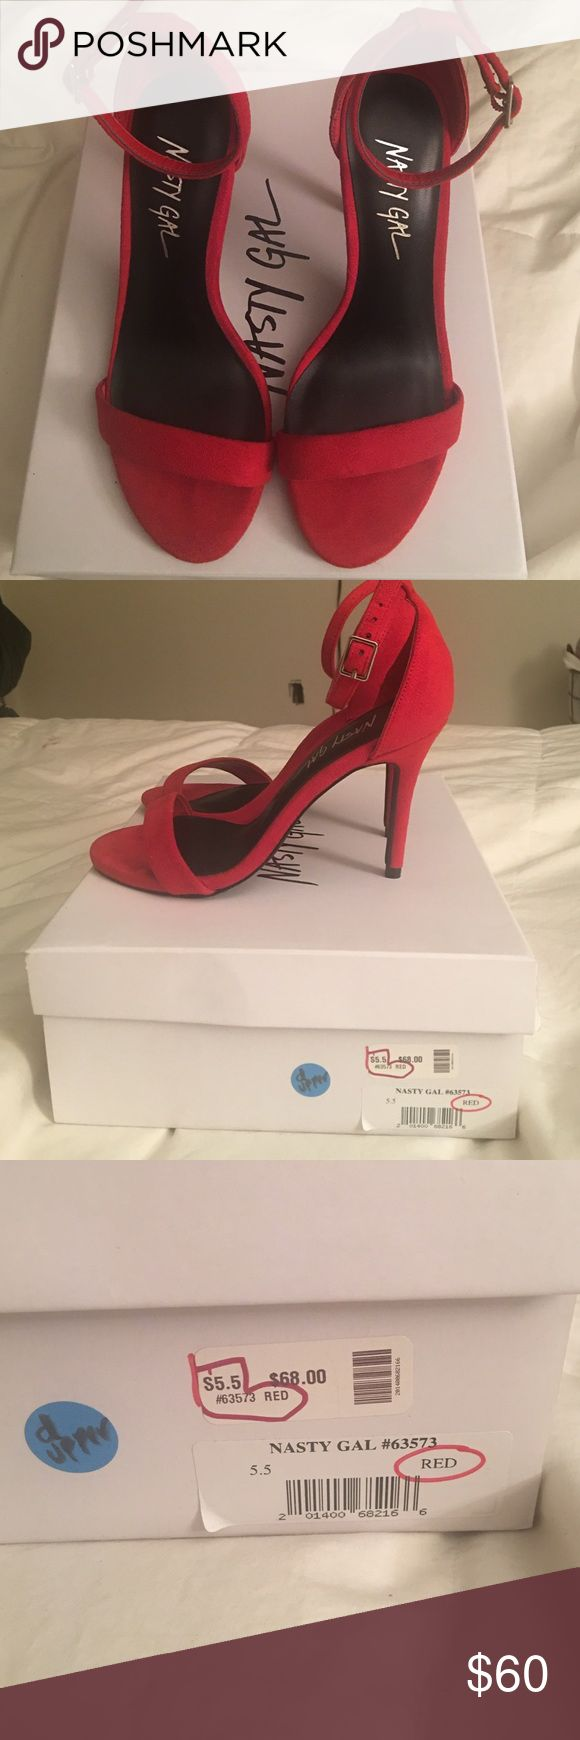 Nasty Gal Red Heeled Sandals Never worn. Missed the return date and they've been sitting in my closet since. I wear size 5.5-6. Please no low ball offers. These are brand new heels. Just trying to get back what I paid. Nasty Gal Shoes Heels